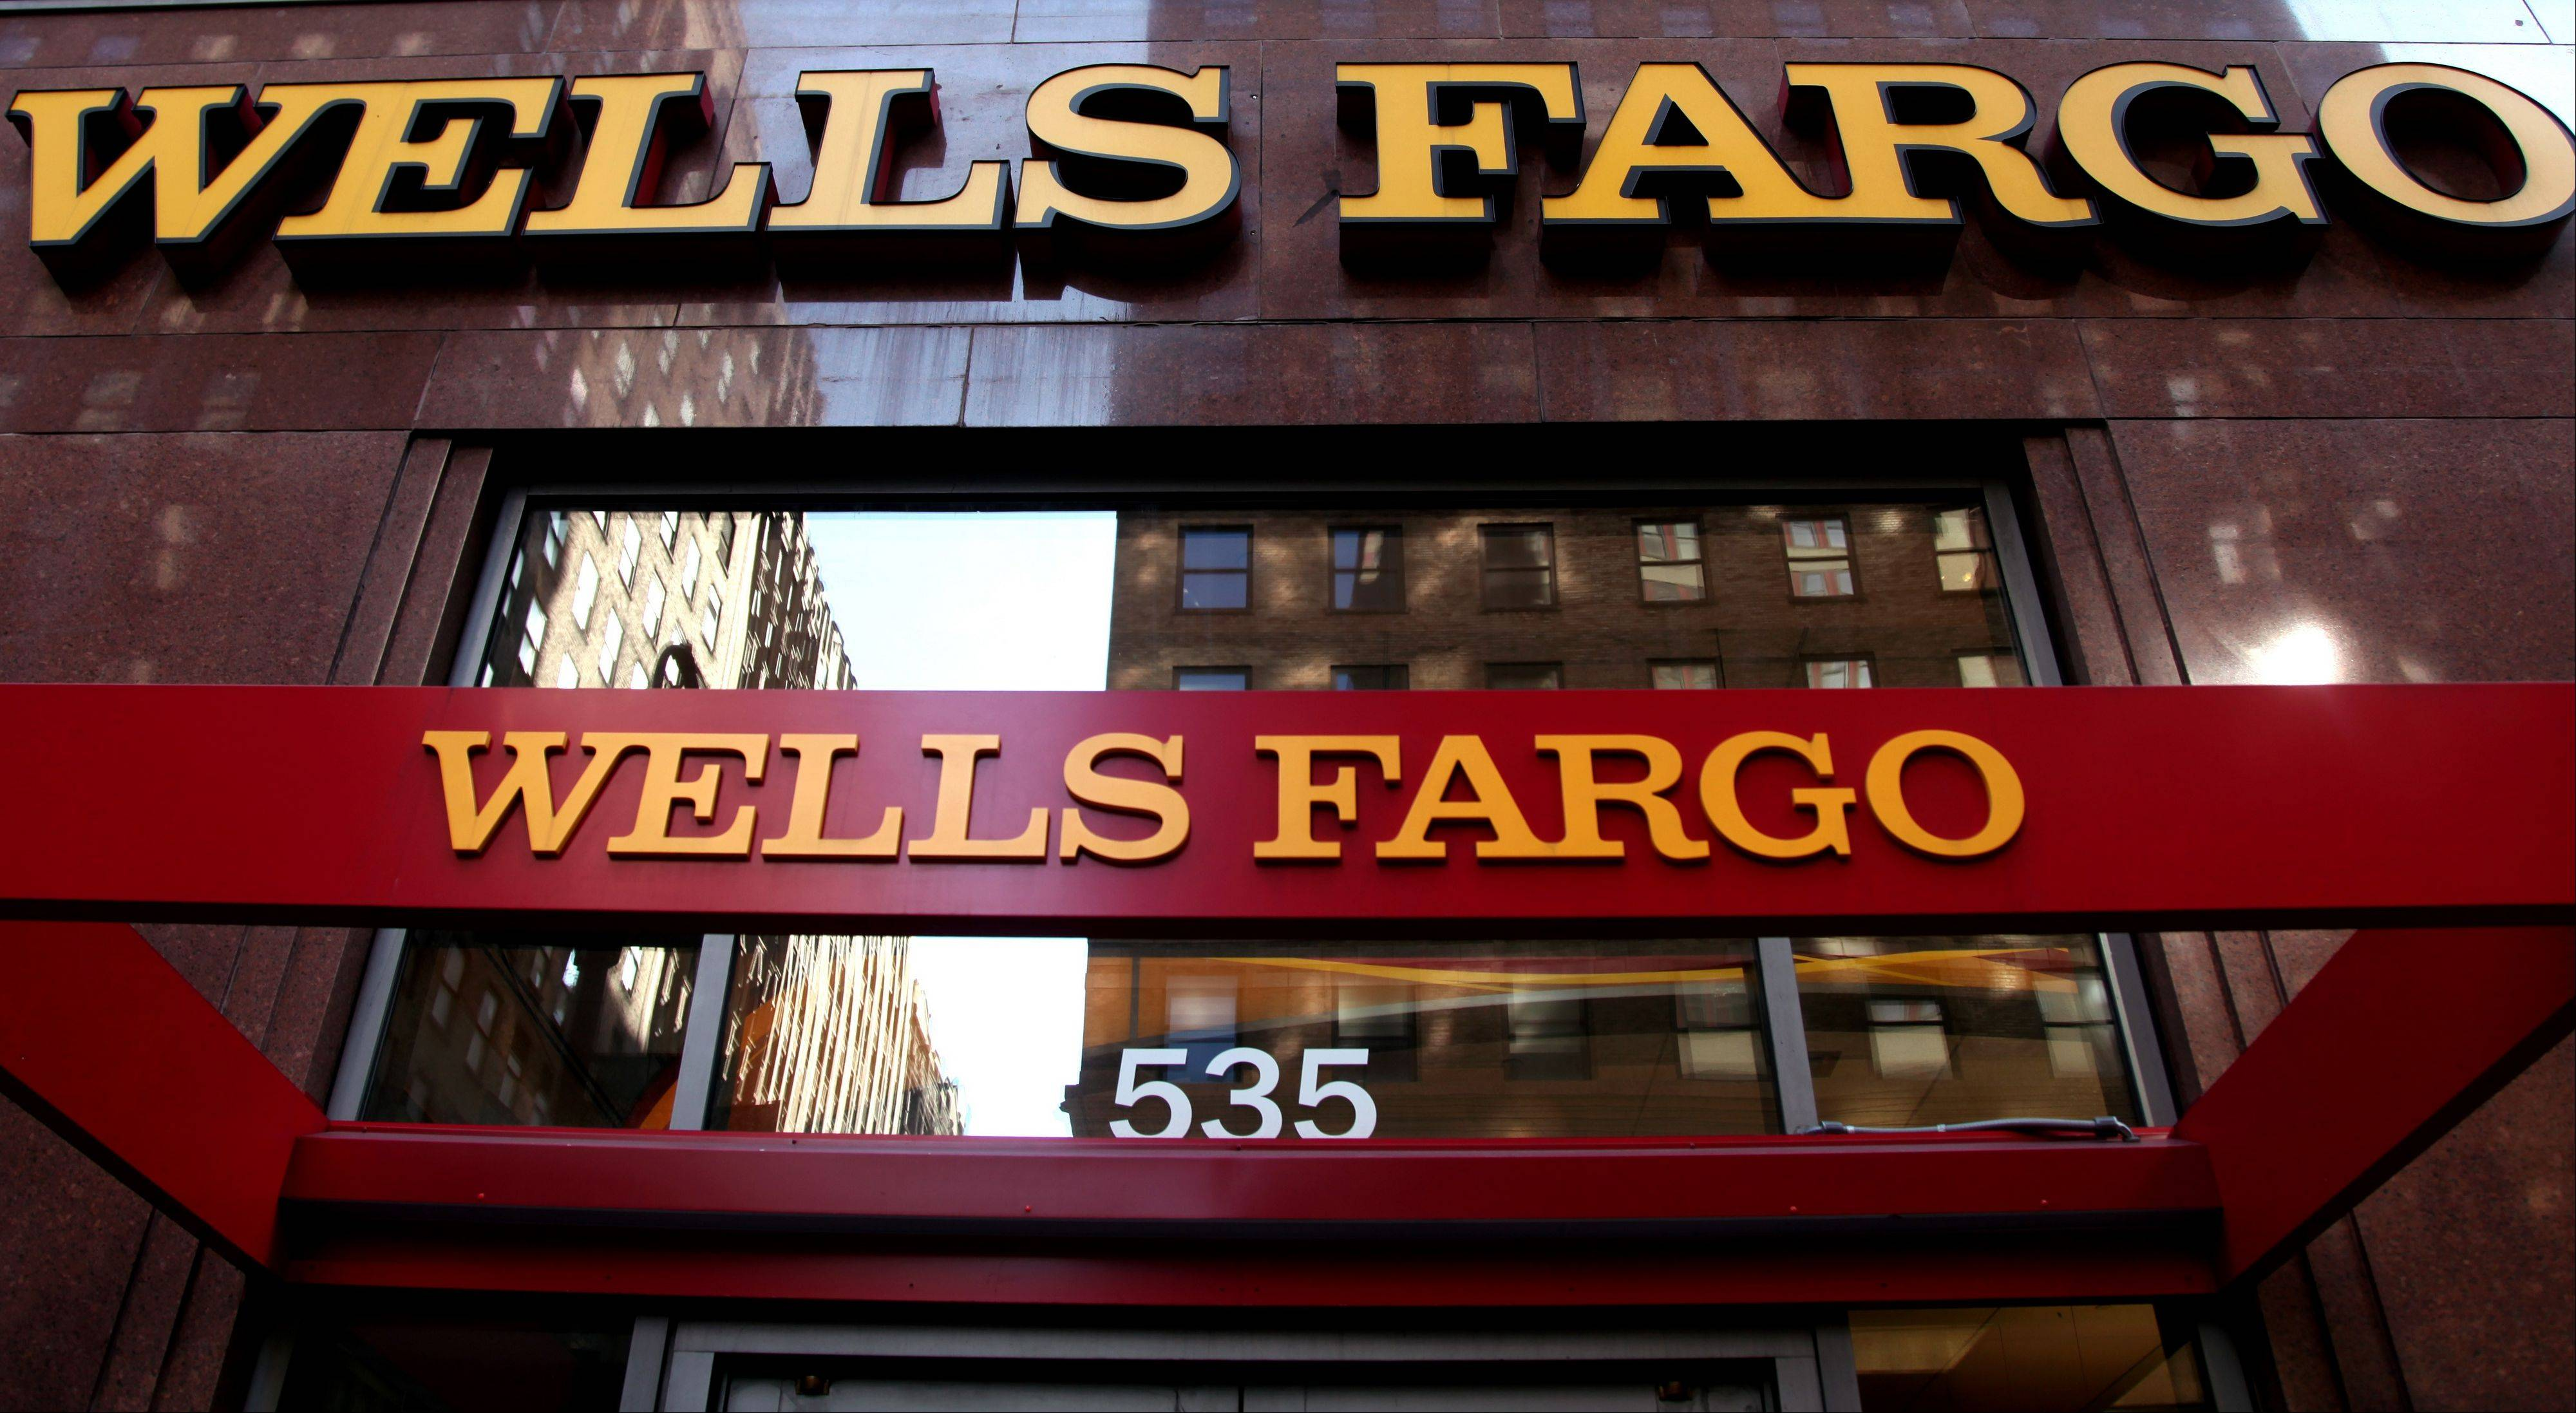 New York's attorney general says he's suing Wells Fargo to force compliance with terms of last year's national mortgage case settlement.